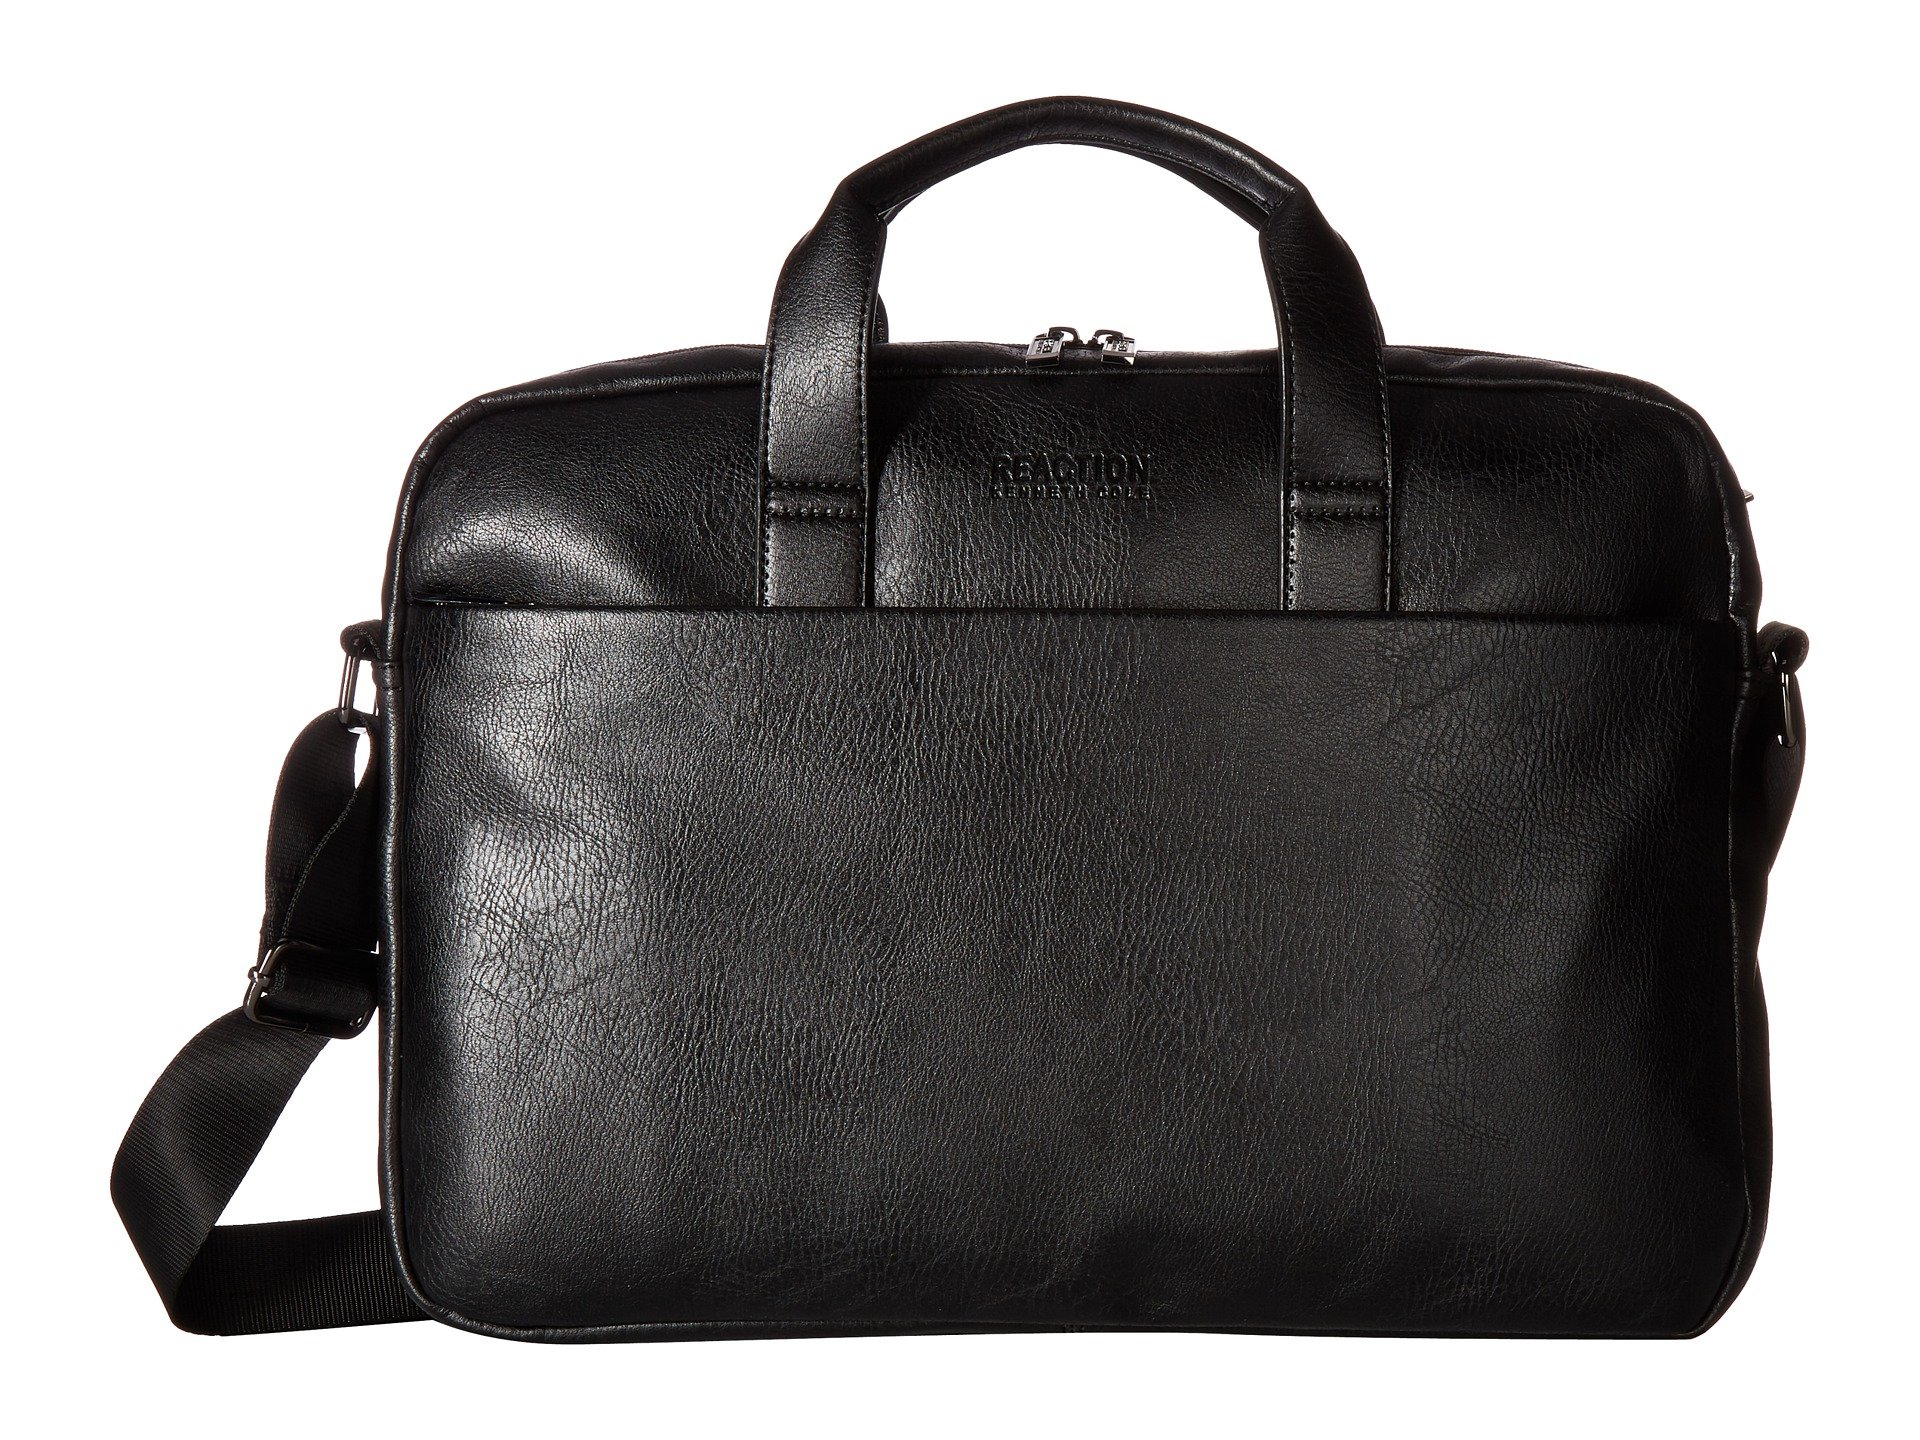 2bc612fc44 Men s Kenneth Cole Reaction Bags + FREE SHIPPING